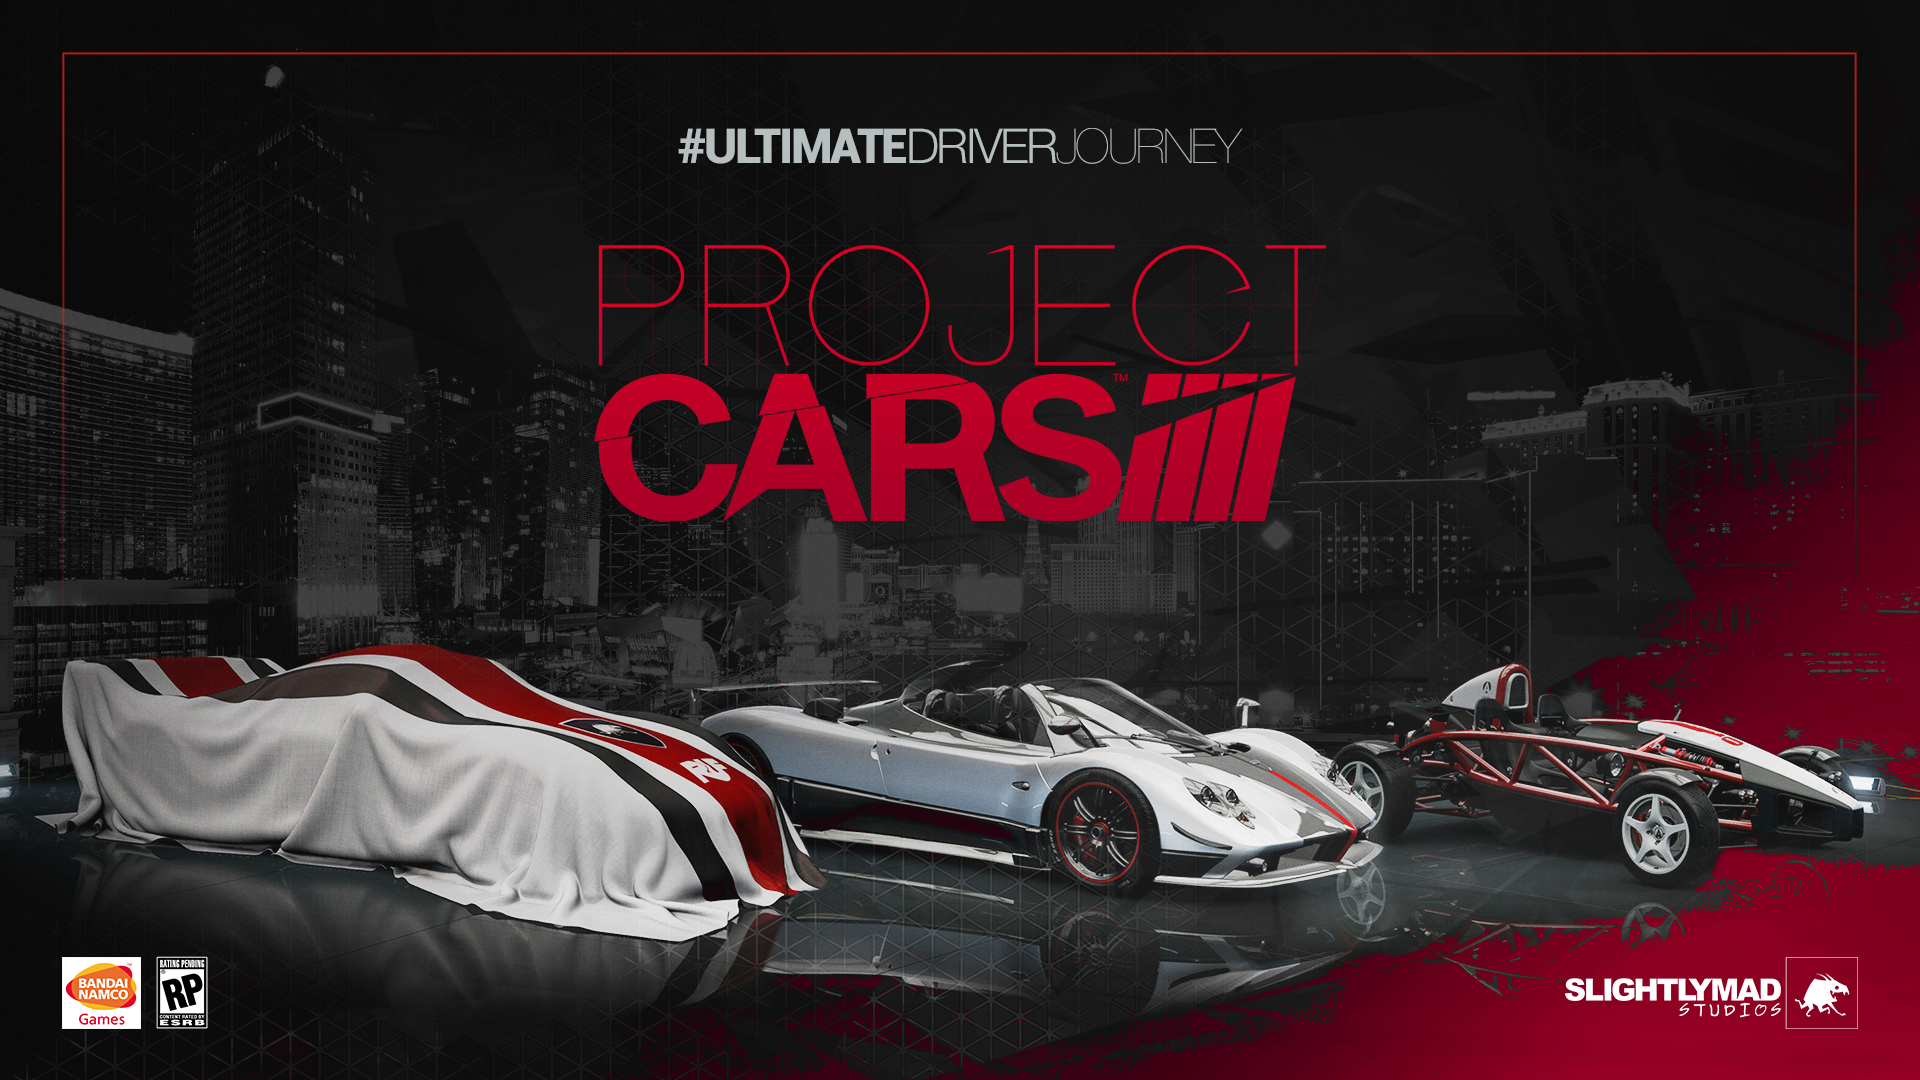 Project cars full hd wallpaper and background 1920x1080 - Project cars 4k wallpaper ...